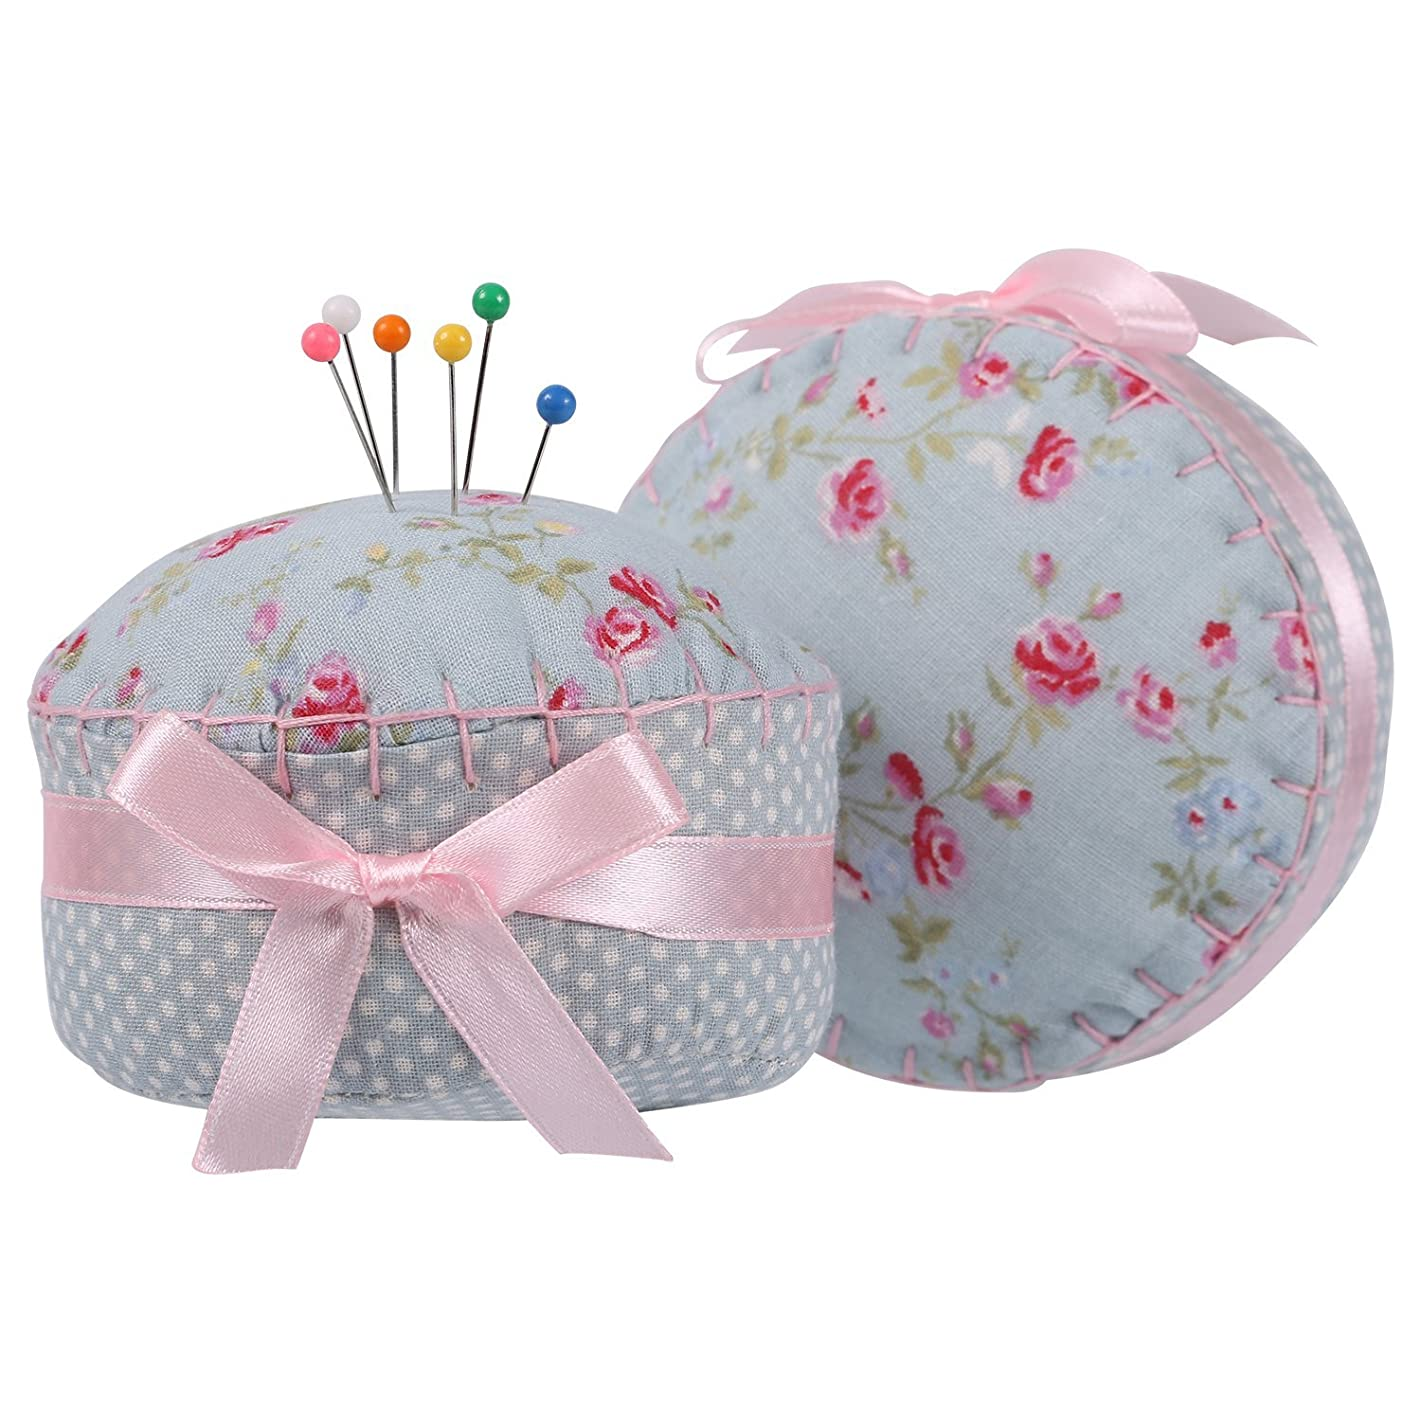 NEOVIVA Cupcake Shaped Pin Cushions for Long Pins, Pack of 2, Floral Blue Ocean